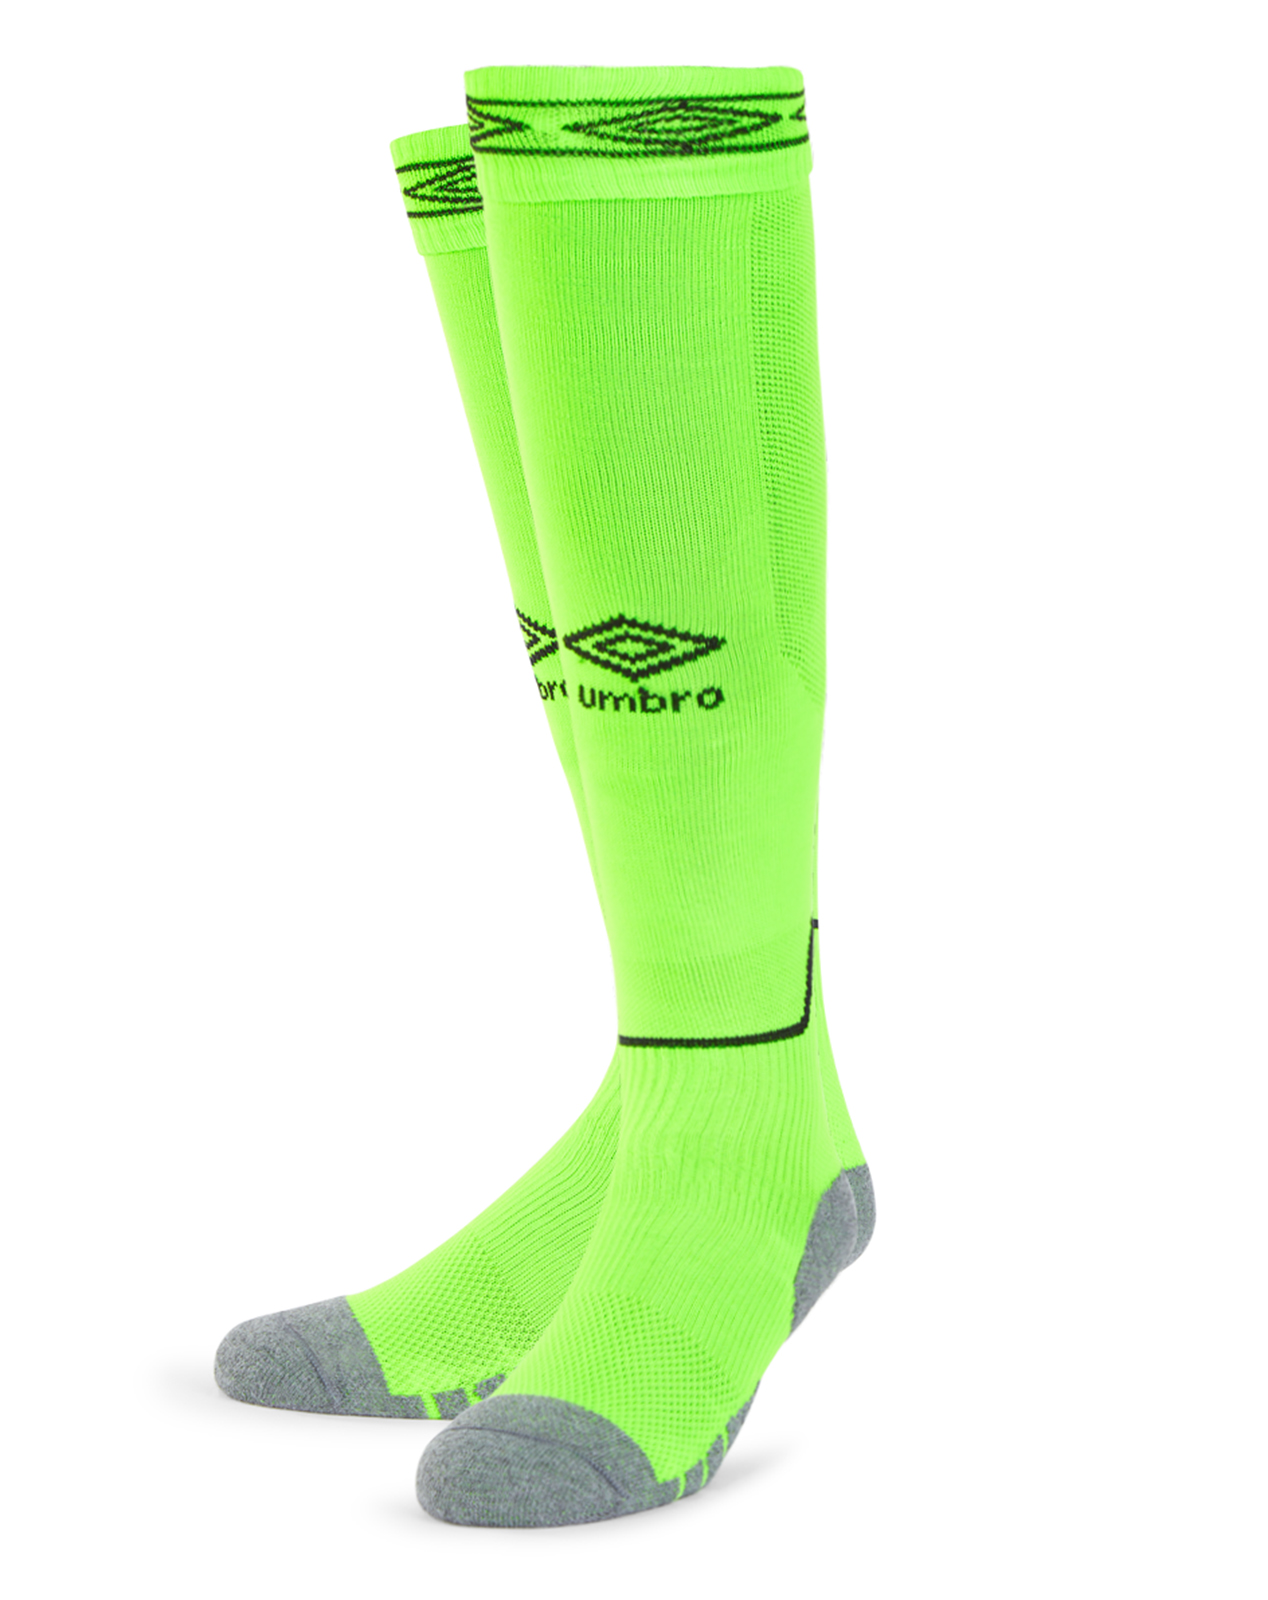 Umbro Classico football sock in gecko green with black Diamond logo on the front